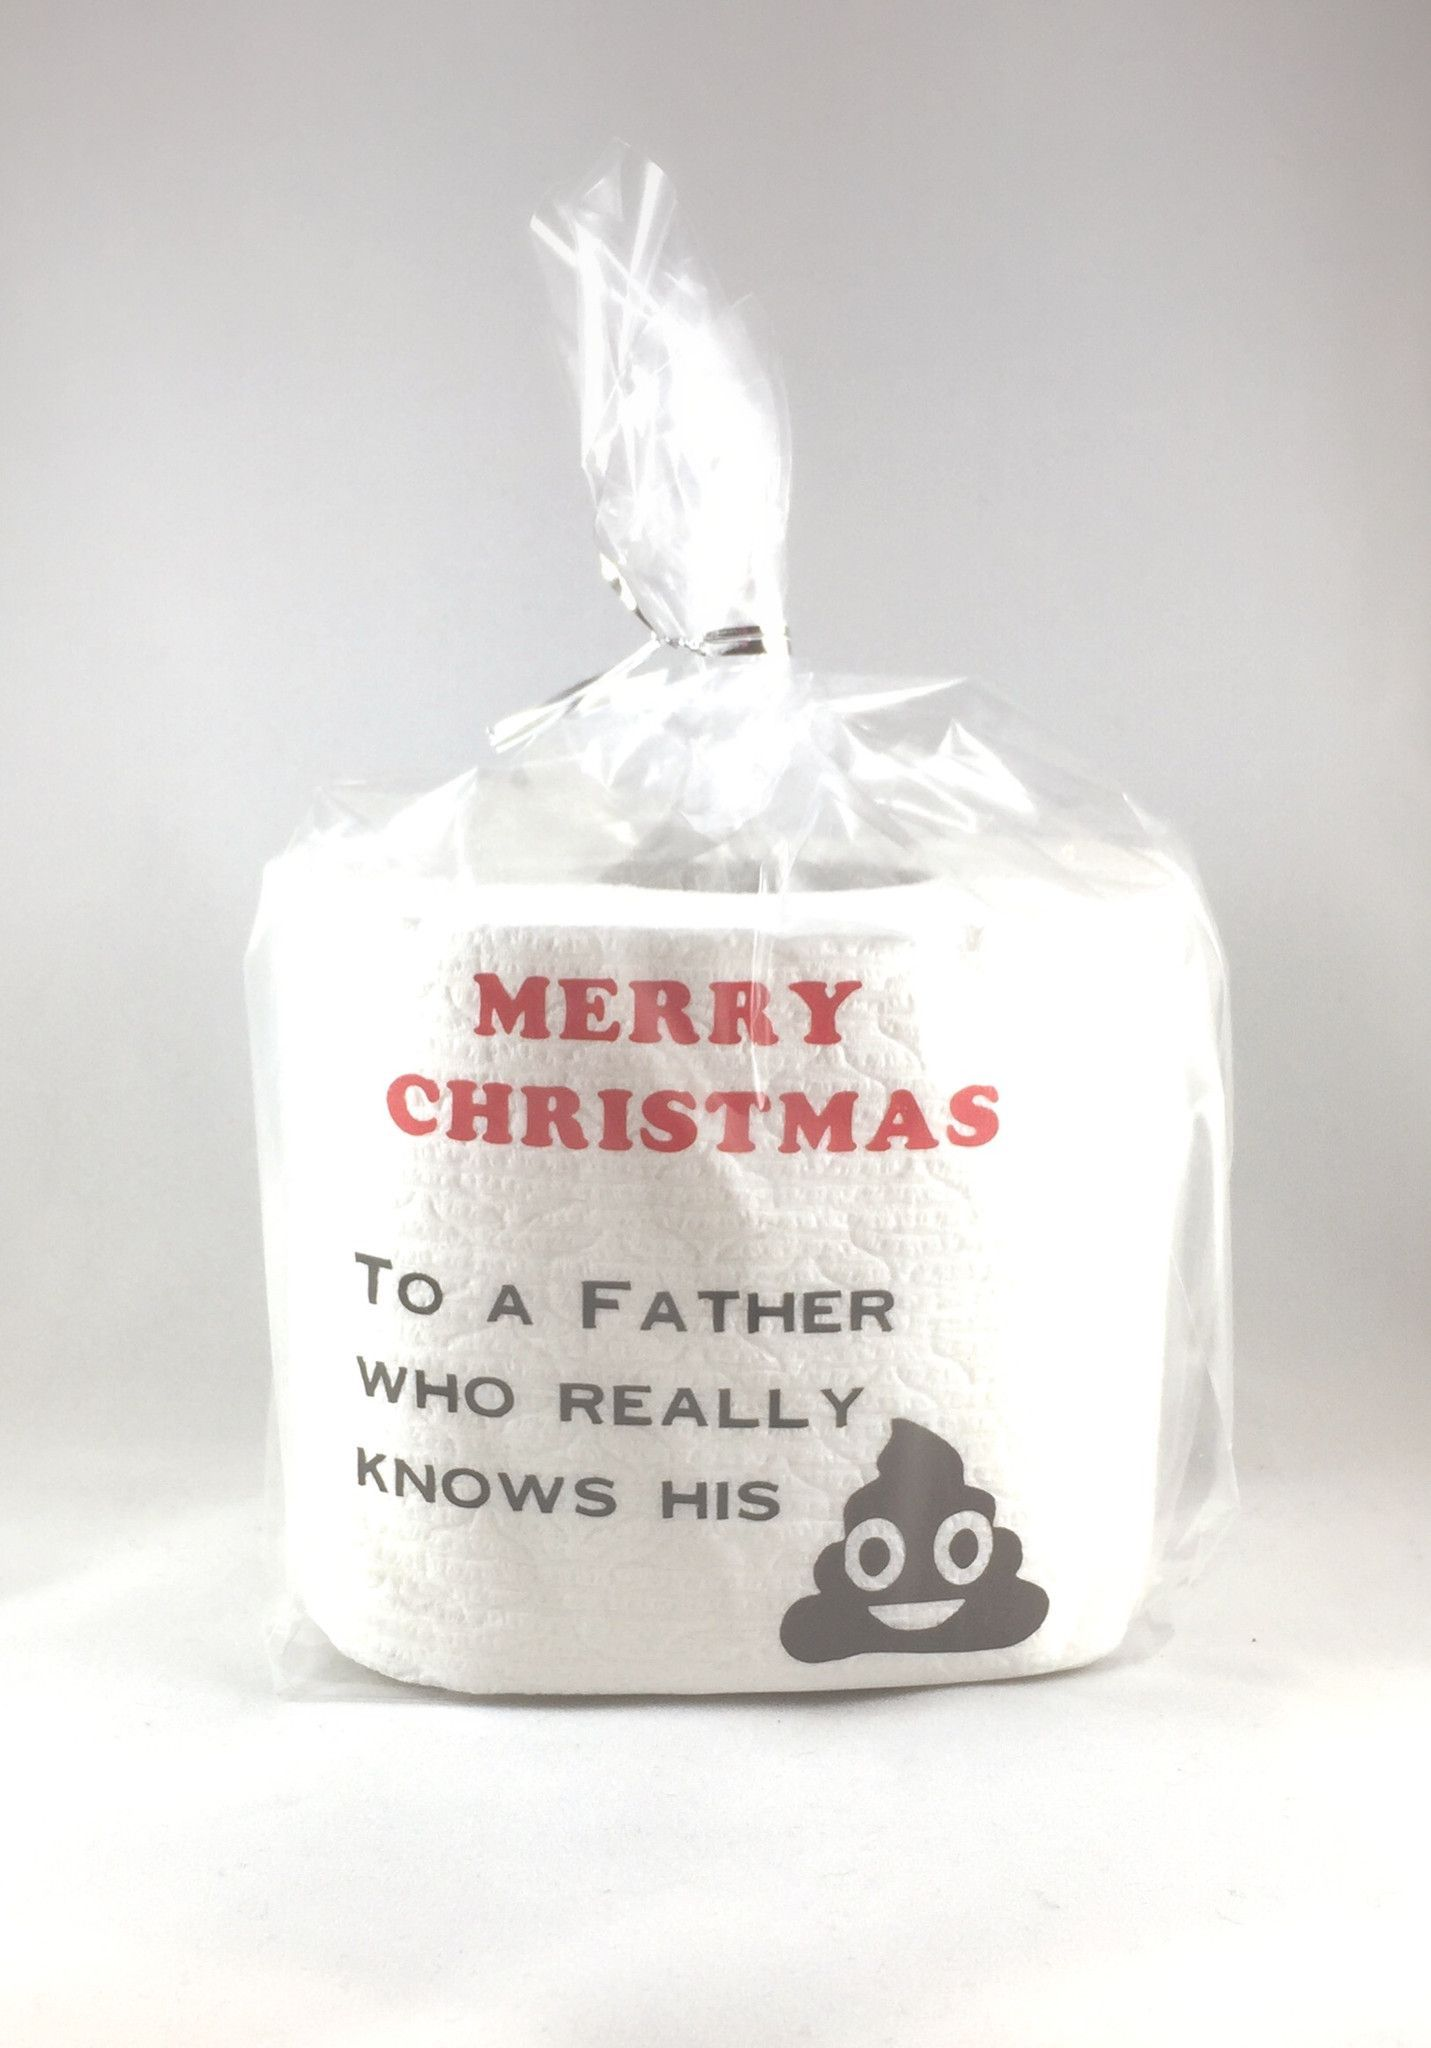 Gifts for Dad that won't disappoint. Christmas toilet paper makes a great white elephant gift or secret Santa gift! These are also great hostess gifts for any Holiday parties you may be attending. Be